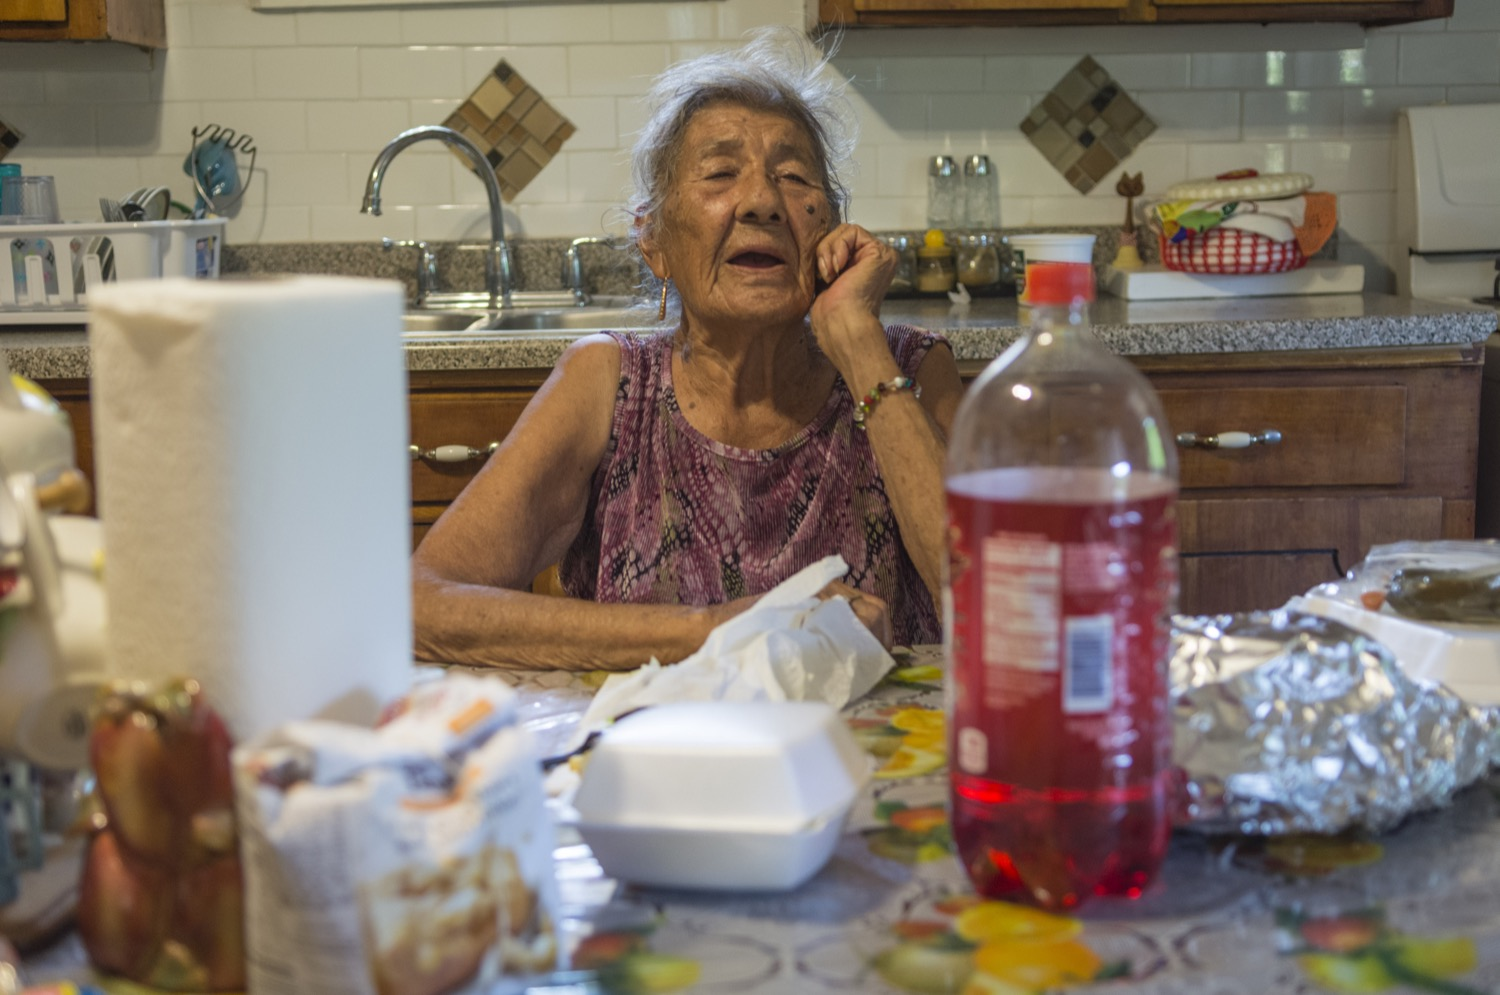 Juliana Martinez talks about her life working in the fields. Mother to Maria Martinez, Juliana was born in Mexico before moving to the US, where she raised kids and picked vegetables for decades.©2018/Jerry Redfern